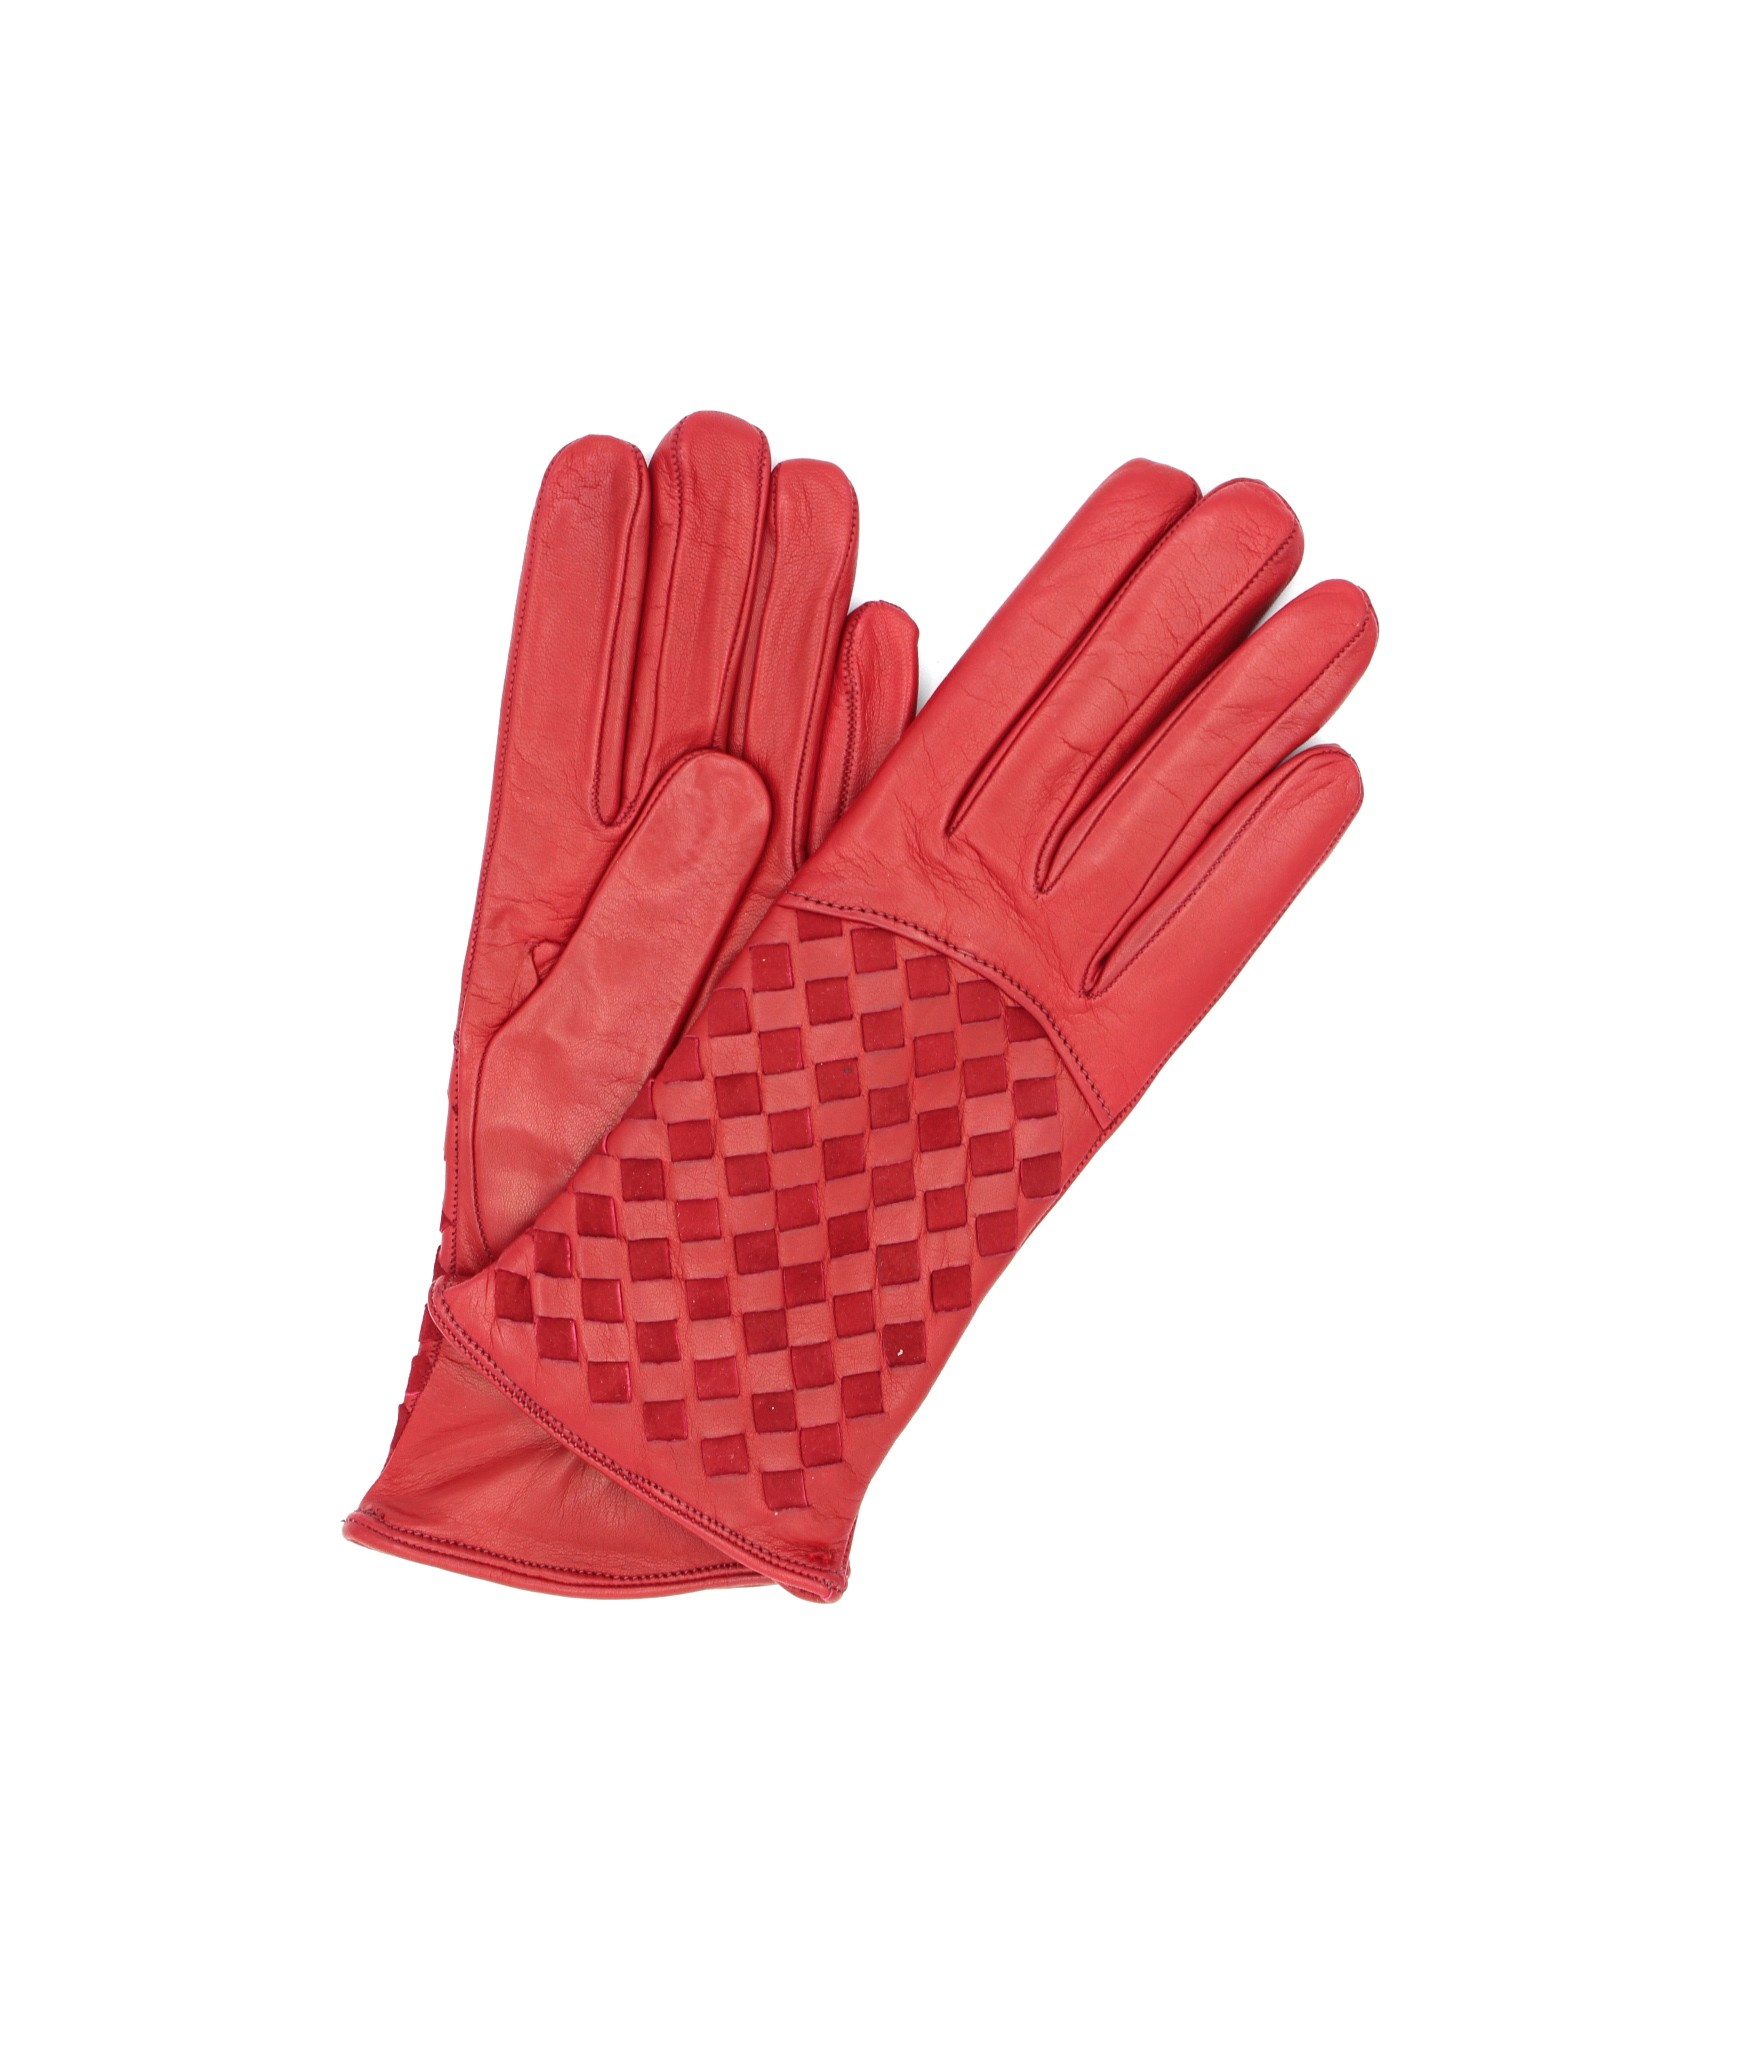 Nappa leather gloves 2bt,cashmere lined with Criss Cross